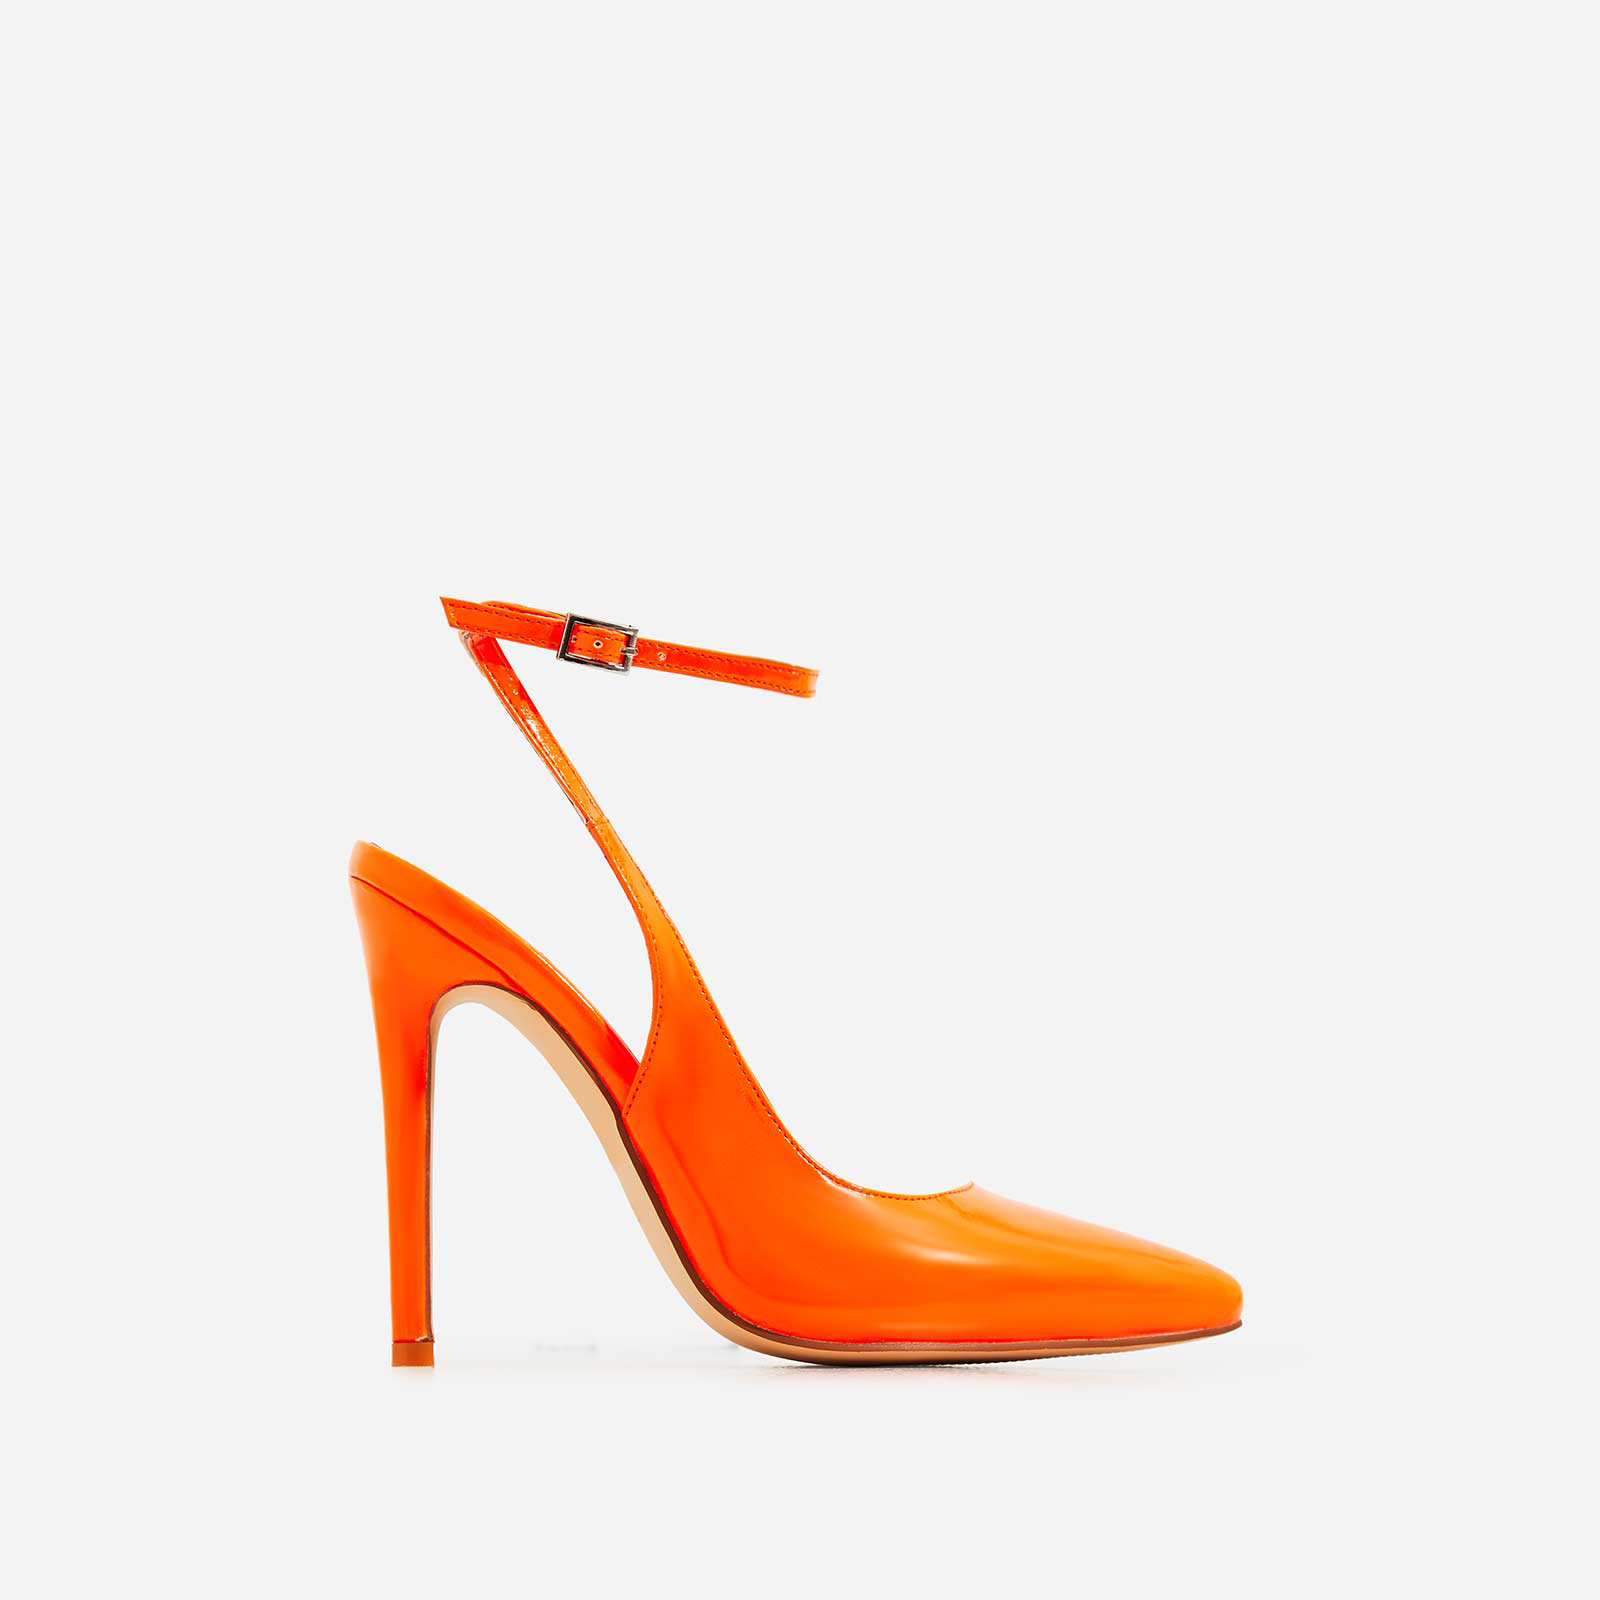 Raina Strappy Court Heel In Neon Orange Patent